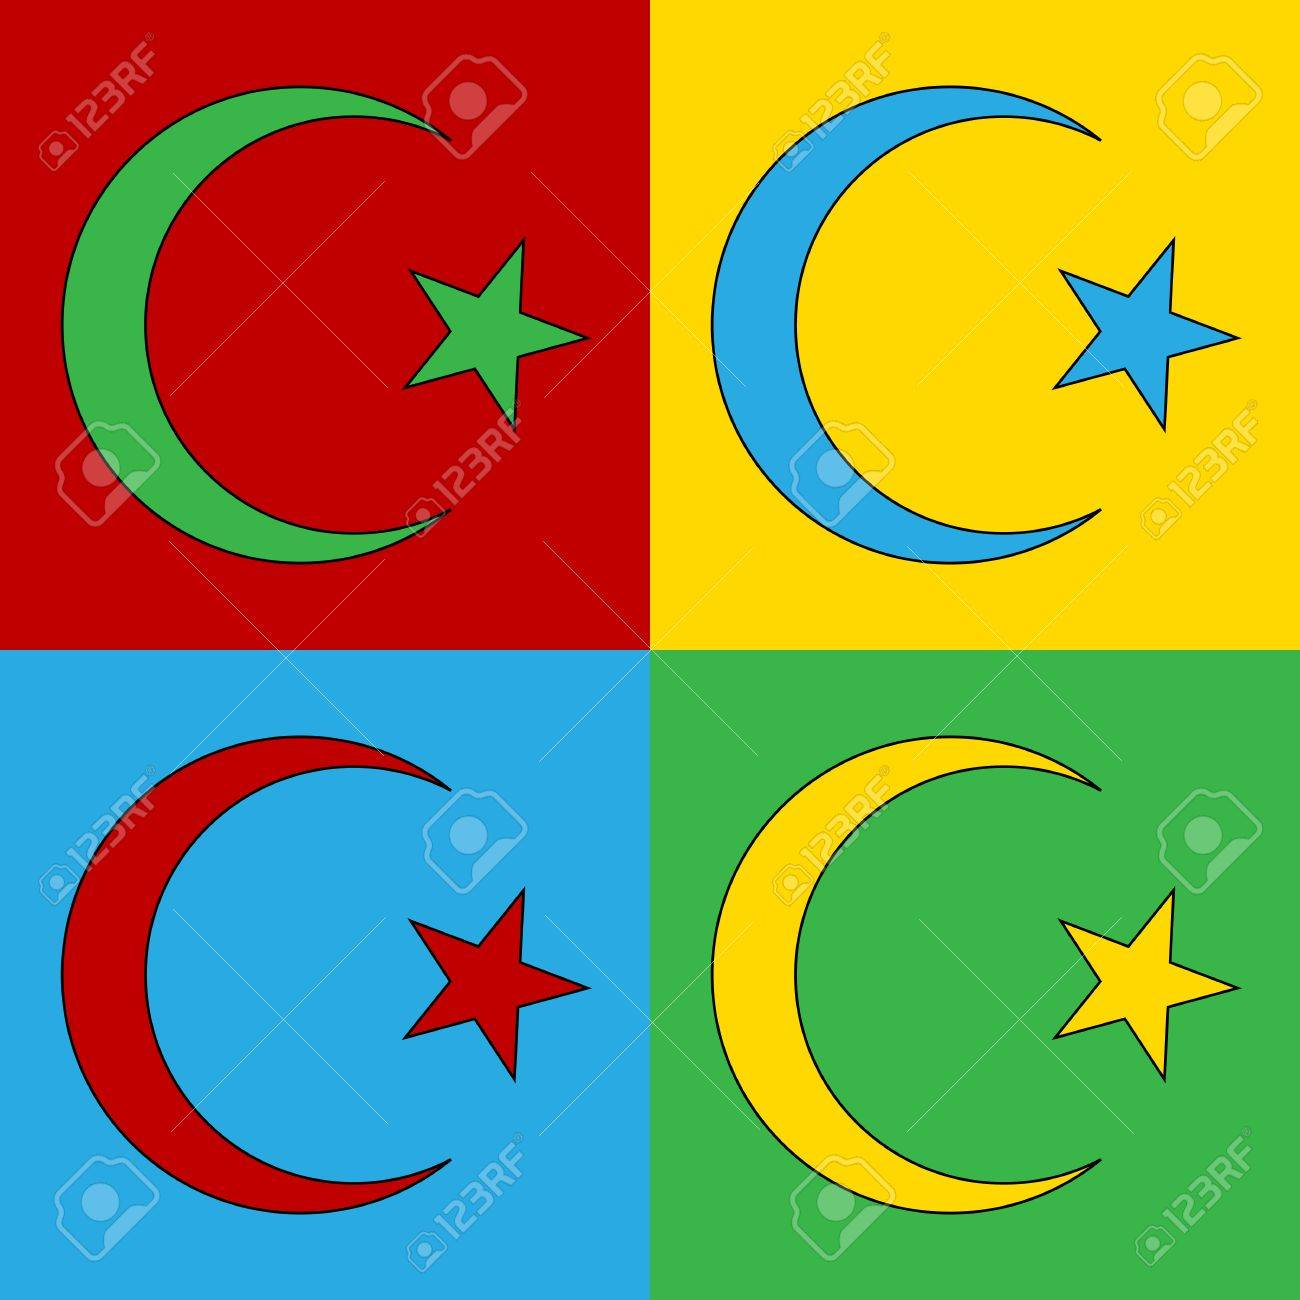 Pop art star and crescent symbol icons vector illustration pop art star and crescent symbol icons vector illustration symbol of islam banque buycottarizona Gallery